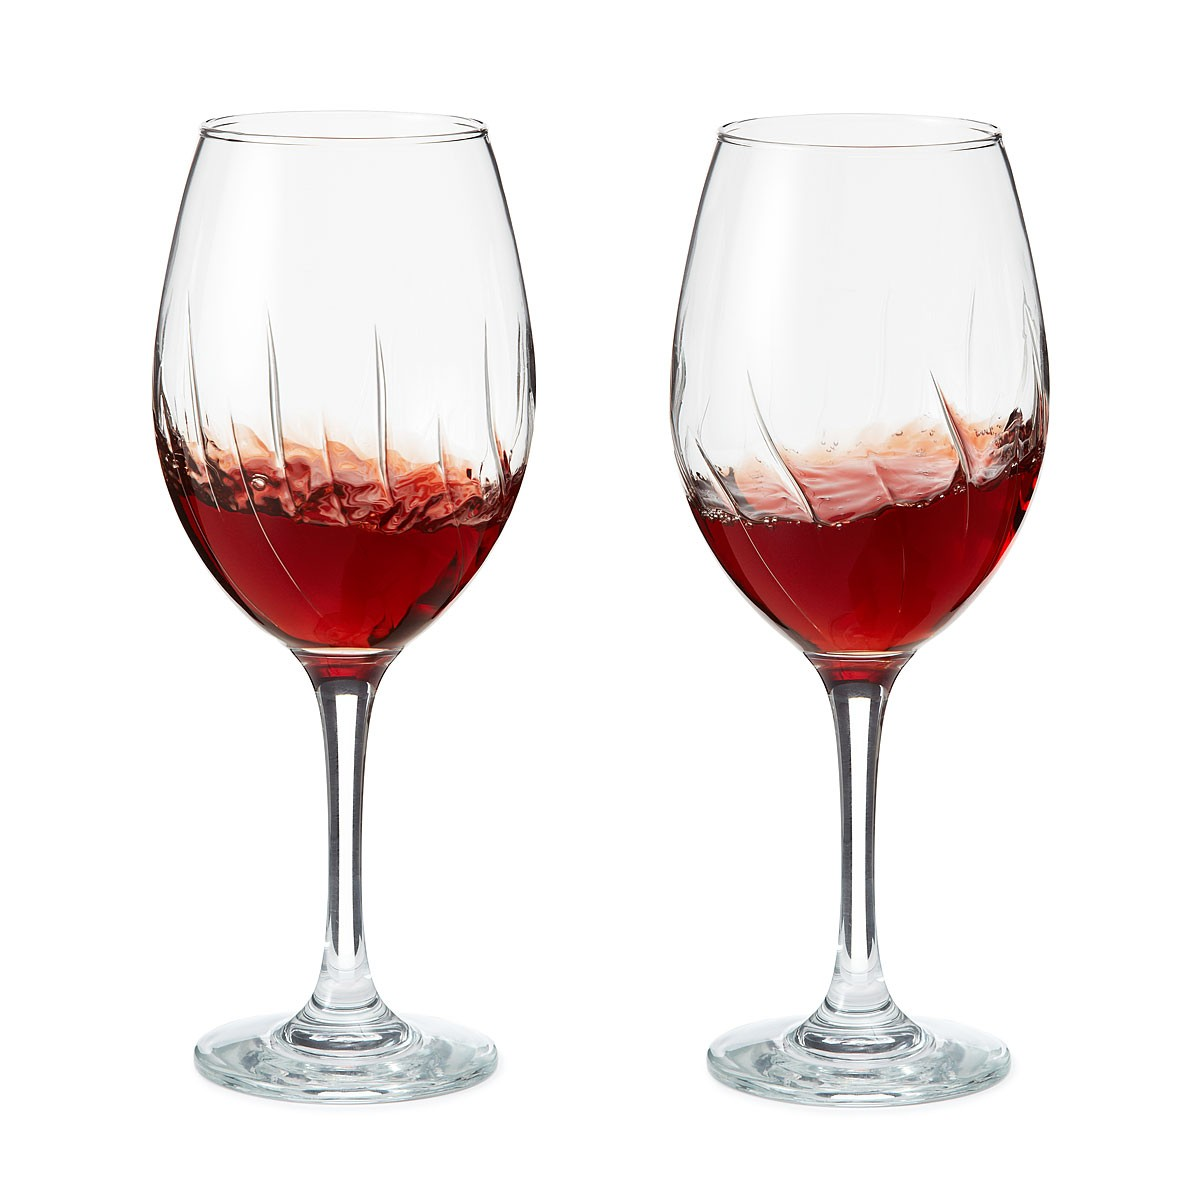 20 Decorative Wine Glasses for Impressing Your Guests